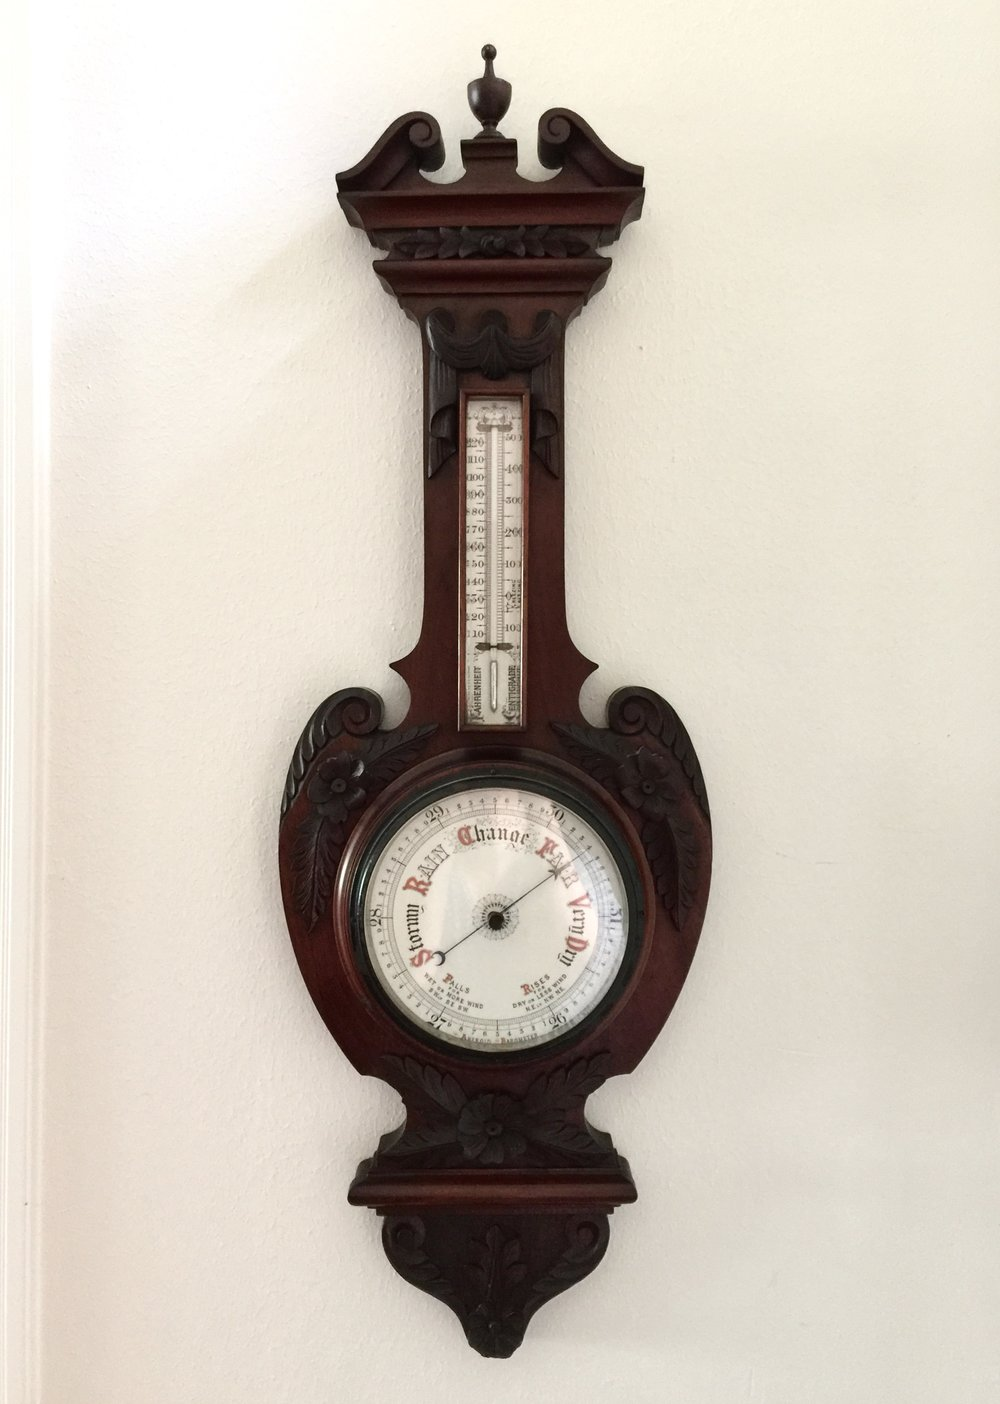 Antique barometer inherited from my husband's father